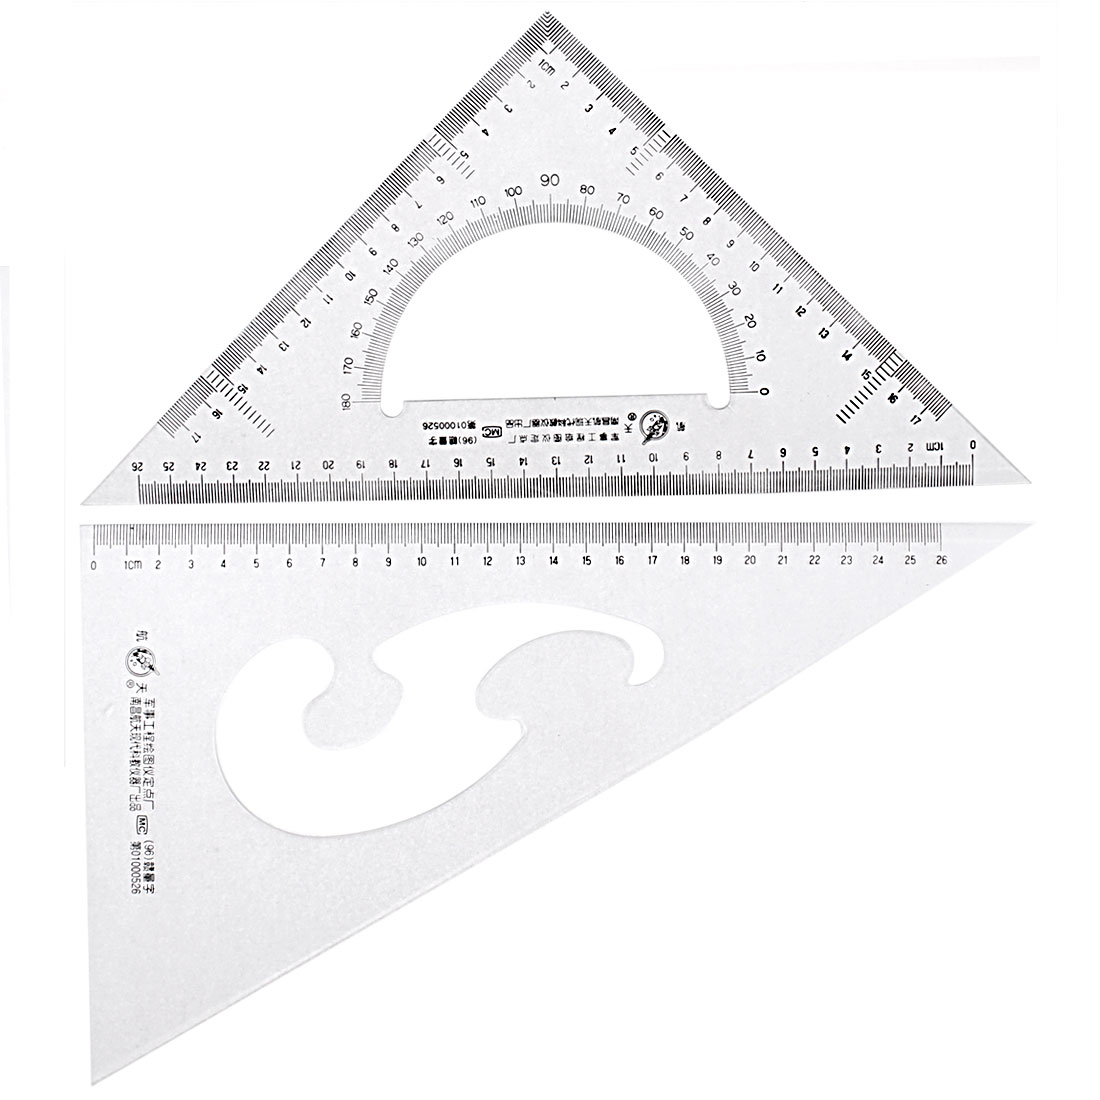 School Stationery 30/60 45 Degree Triangle Rulers Protractor Drawing Tool 2 Pcs